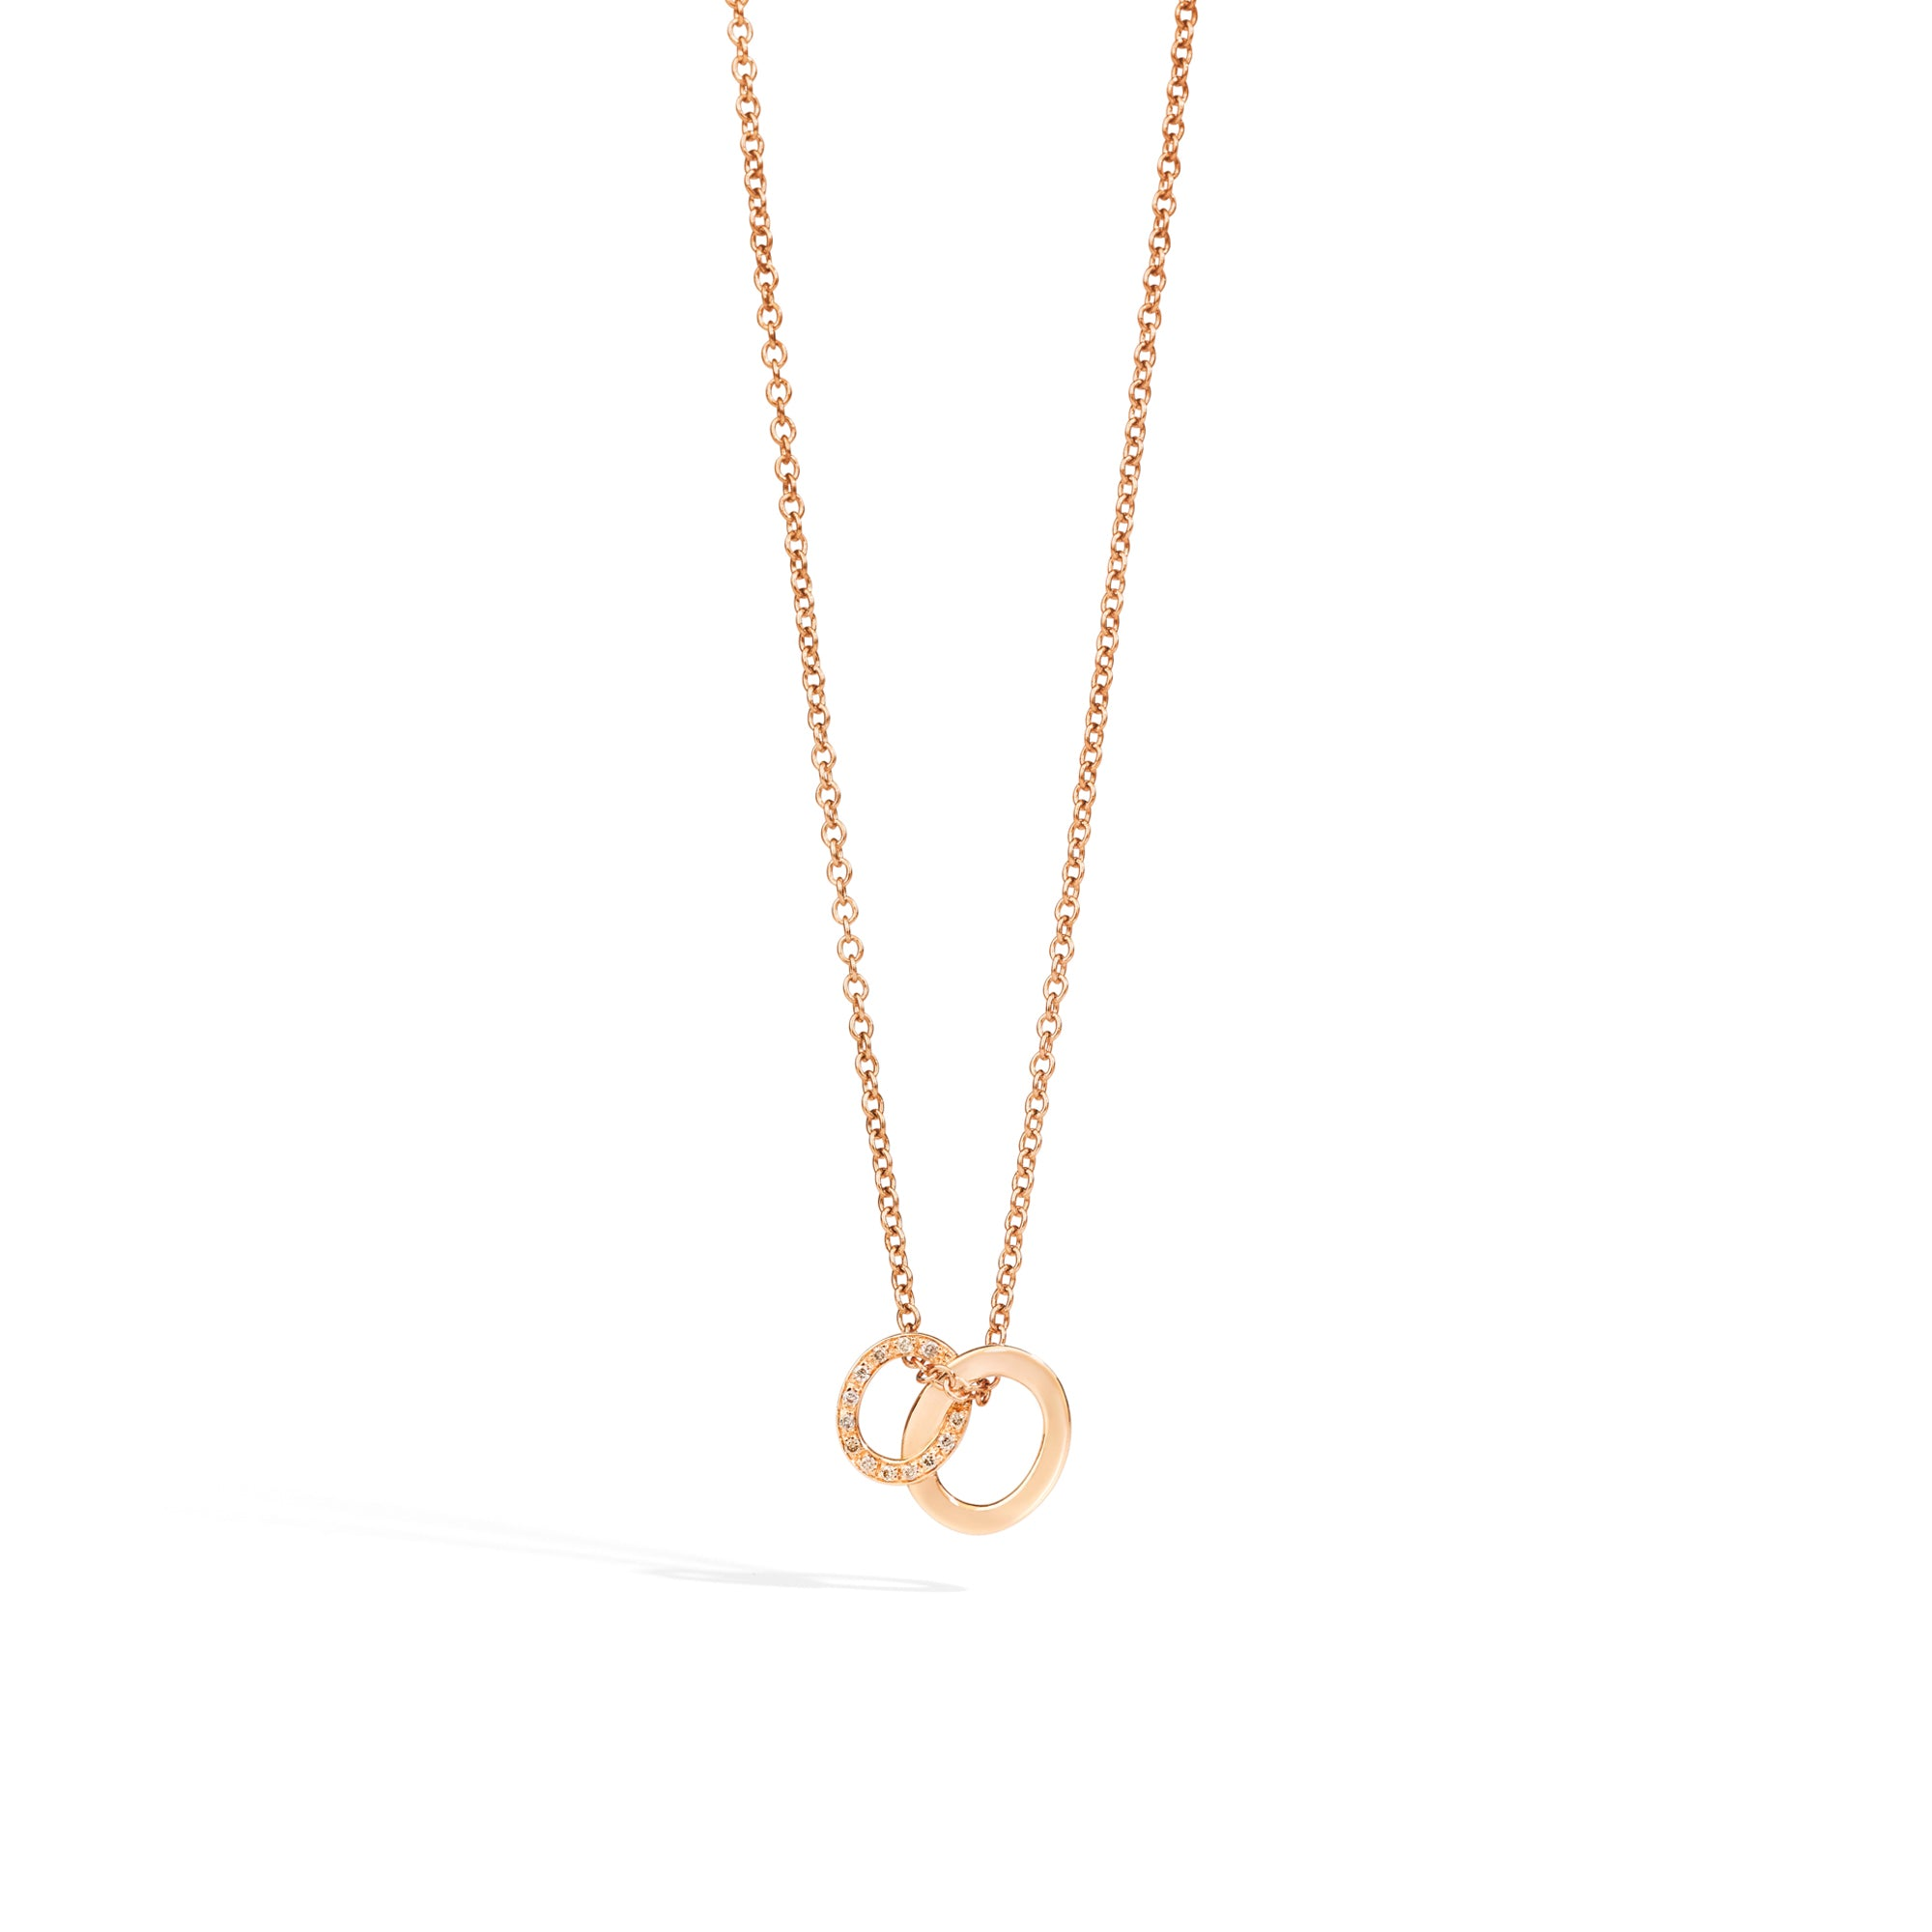 Brera Pendant with Necklace in 18k Rose Gold with Brown Diamonds - Orsini Jewellers NZ